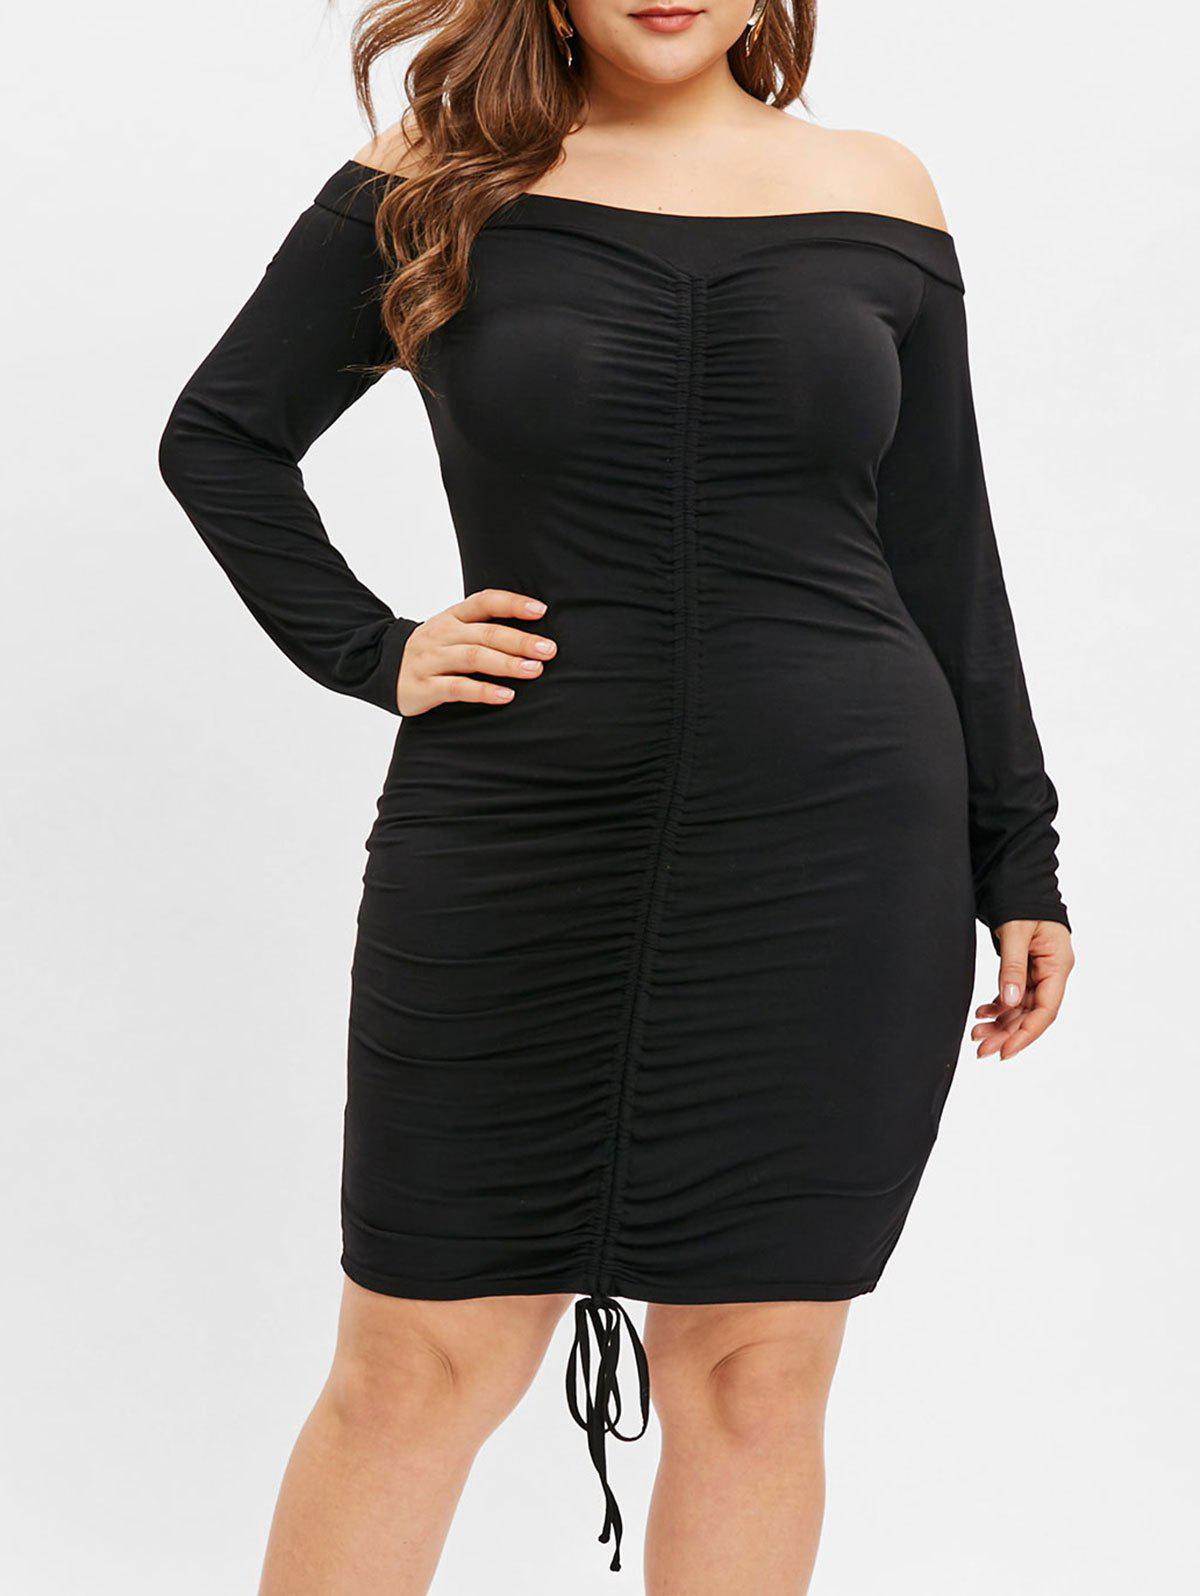 Plus Size Off The Shoulder Drawstring Ruched Dress - BLACK 5X